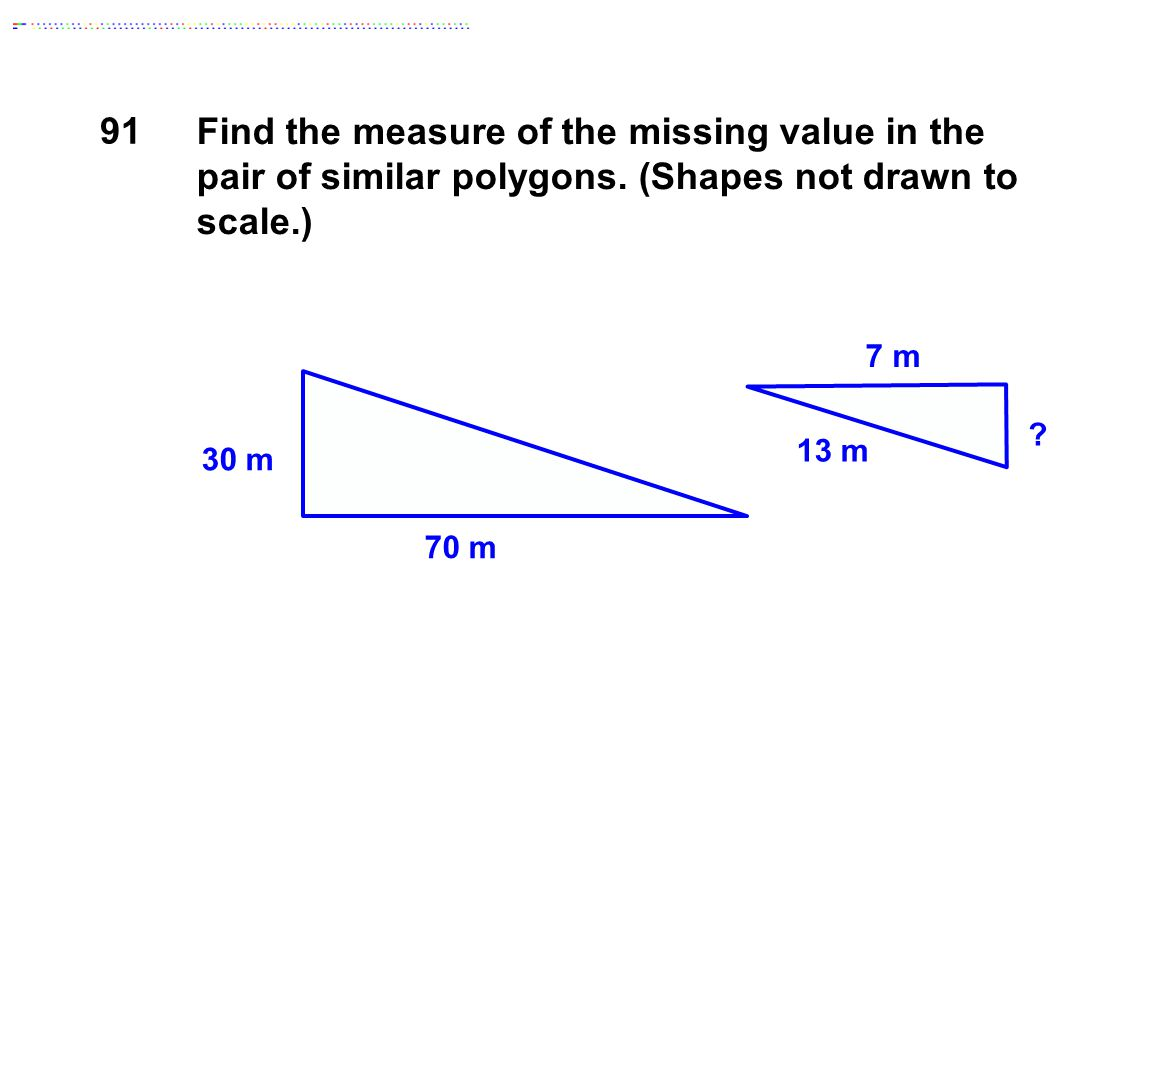 91 Find the measure of the missing value in the pair of similar polygons. (Shapes not drawn to scale.)